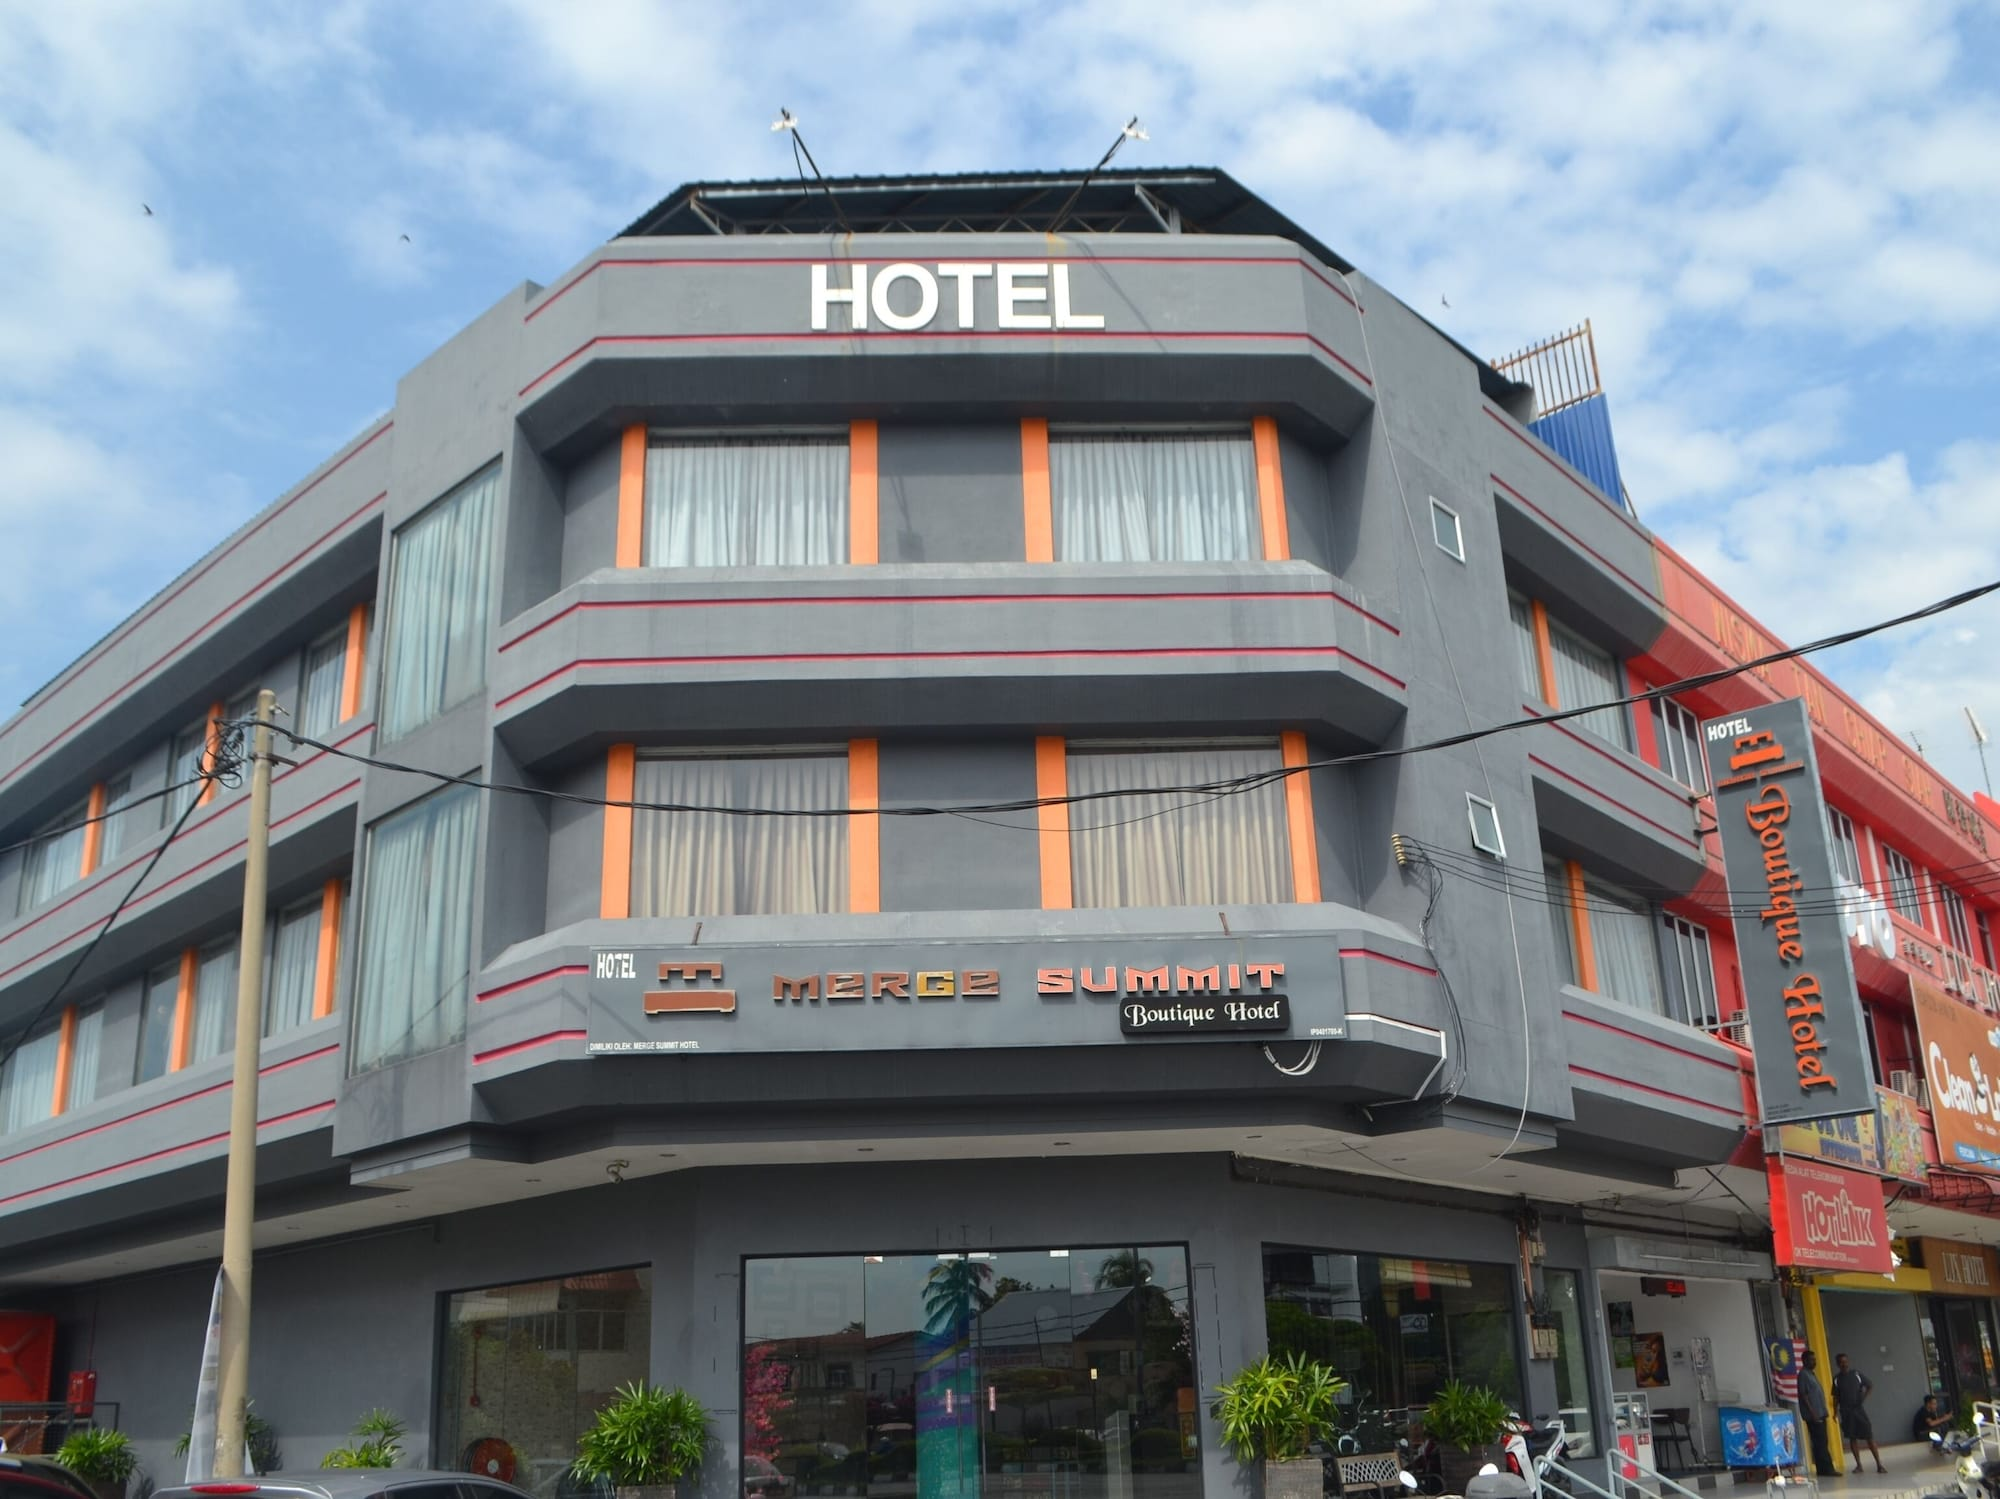 OYO 89620 Merge Summit Boutique Hotel, Hilir Perak